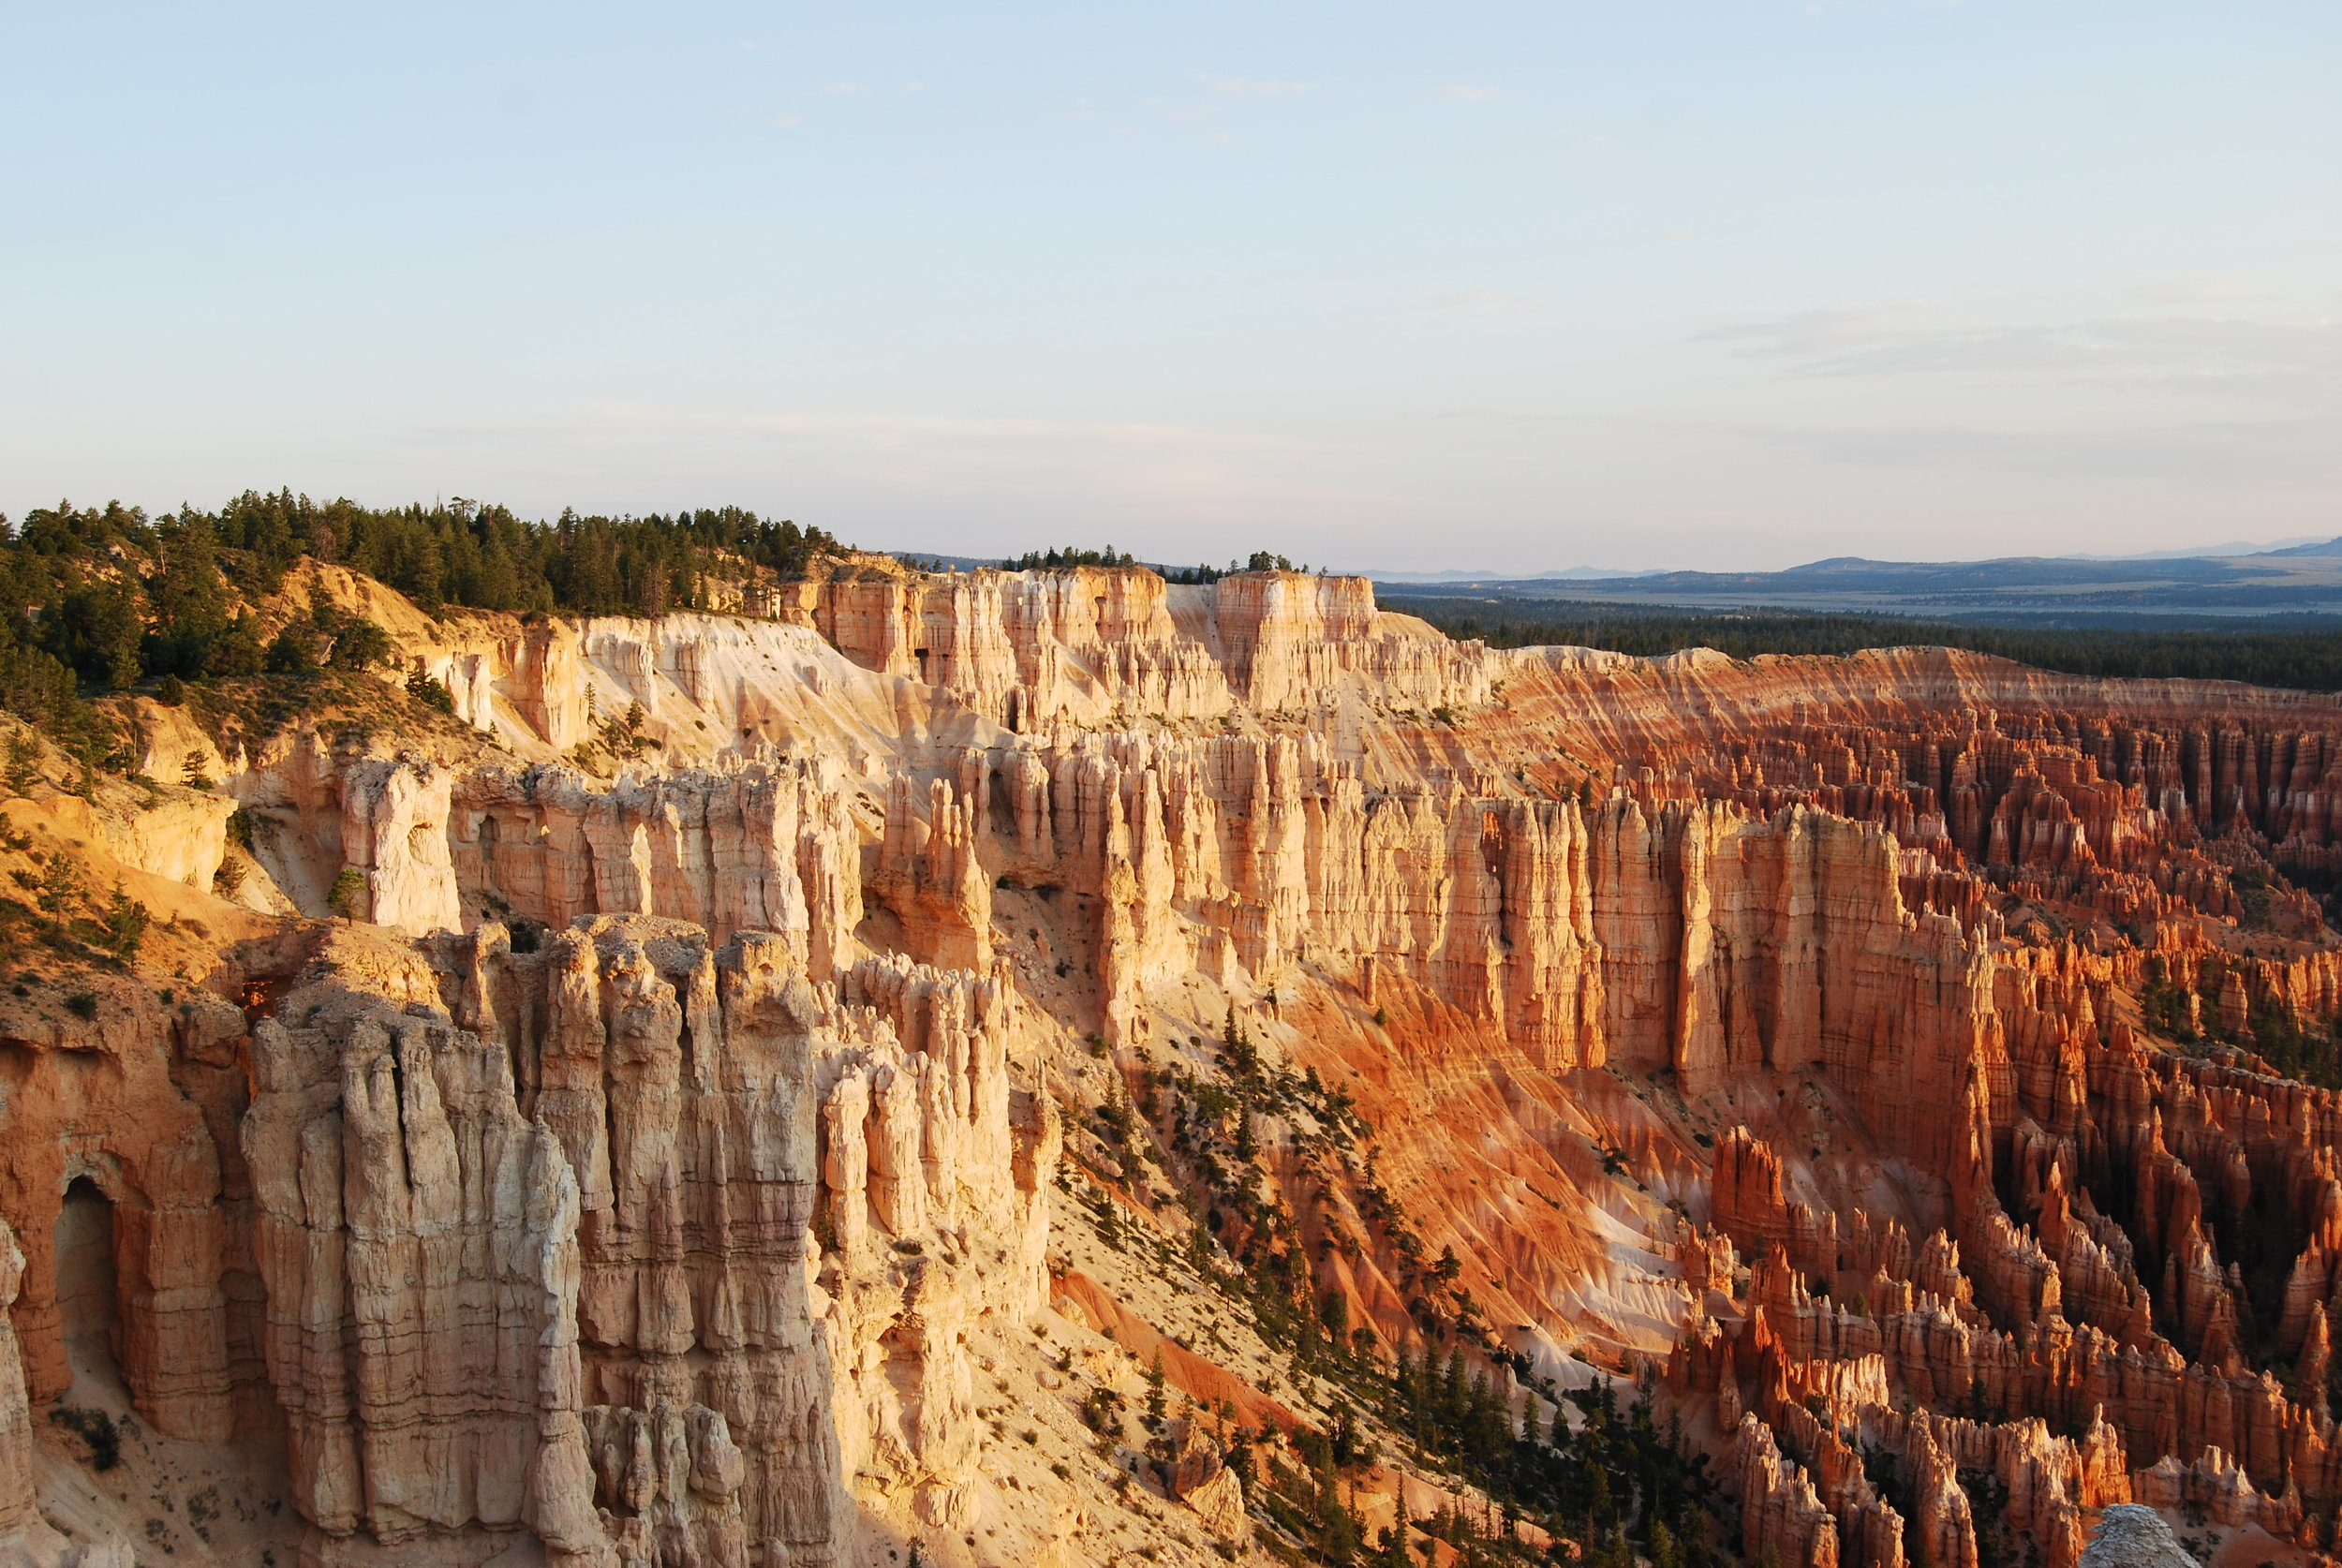 The hoodoos looked as if they were glowing when the light began to hit them.